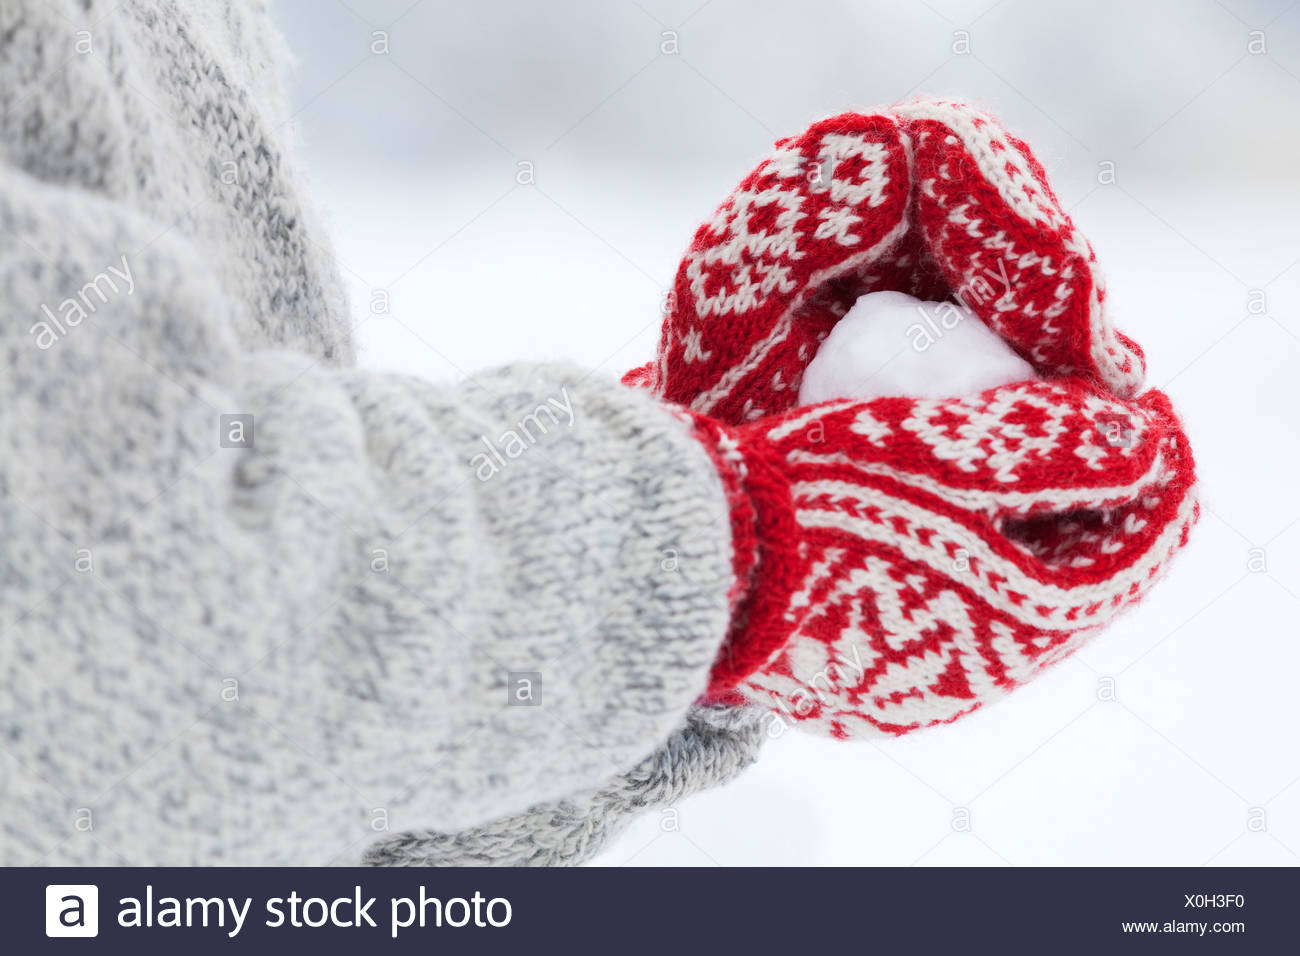 Person making snowball - Stock Image